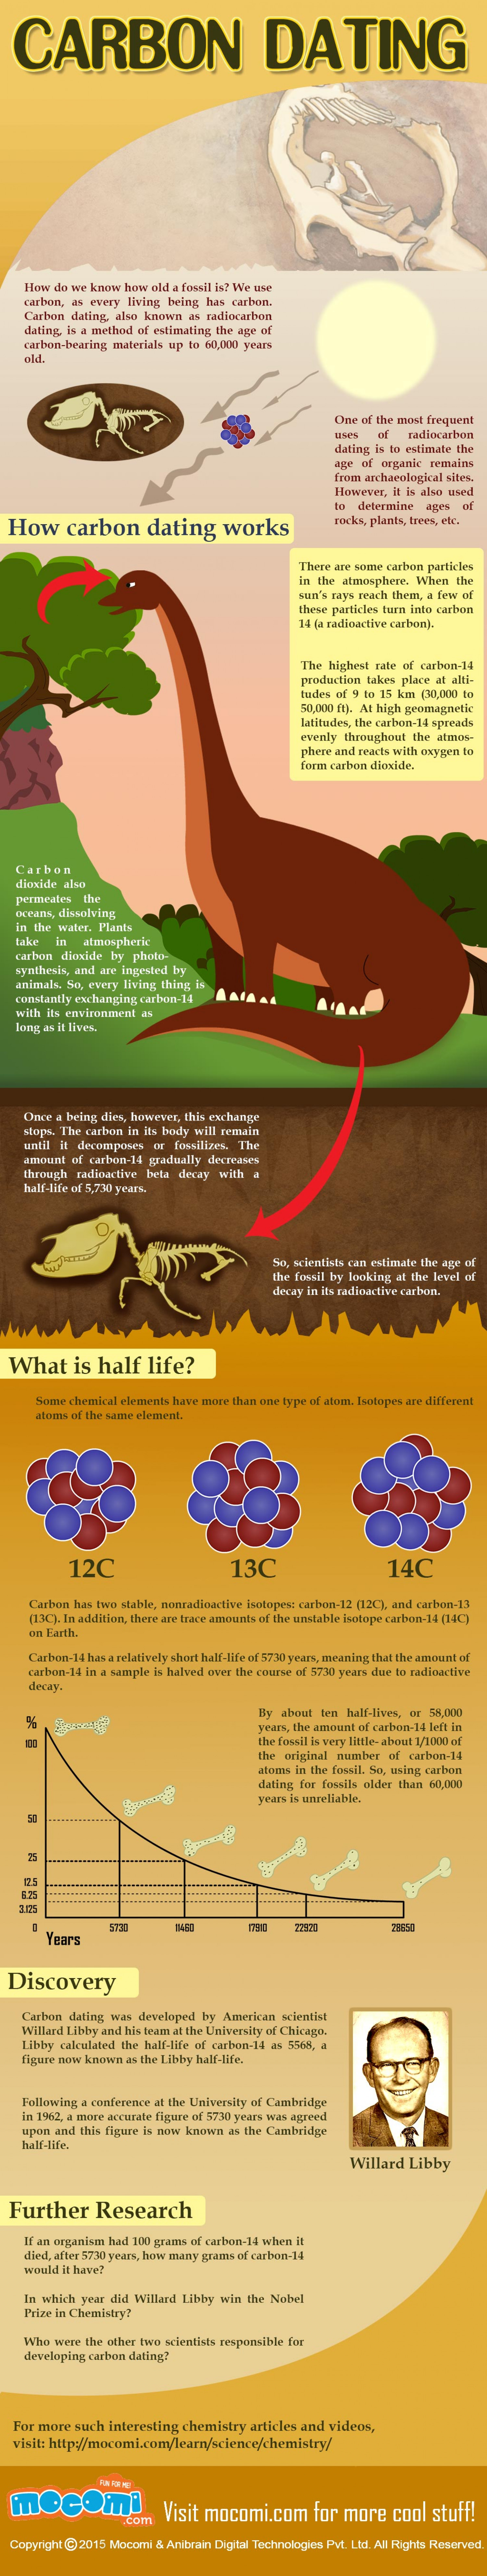 Carbon Dating Infographic